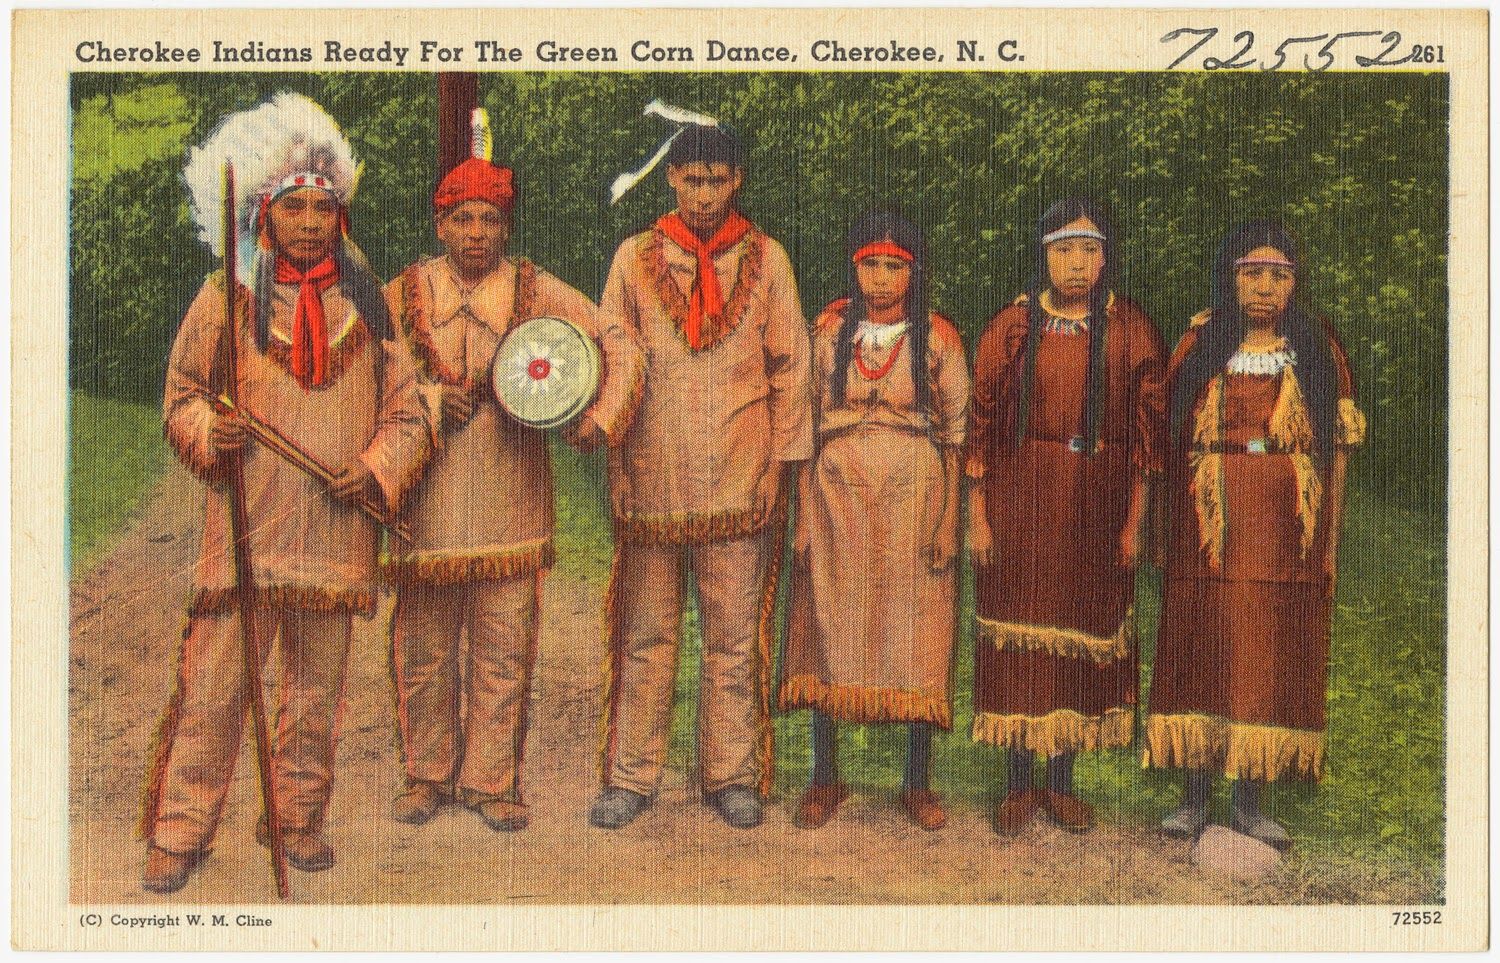 cherokee village hispanic single women A european-american man could legally marry a cherokee woman by  attractions include the oconaluftee indian village, museum of the cherokee  latino american .